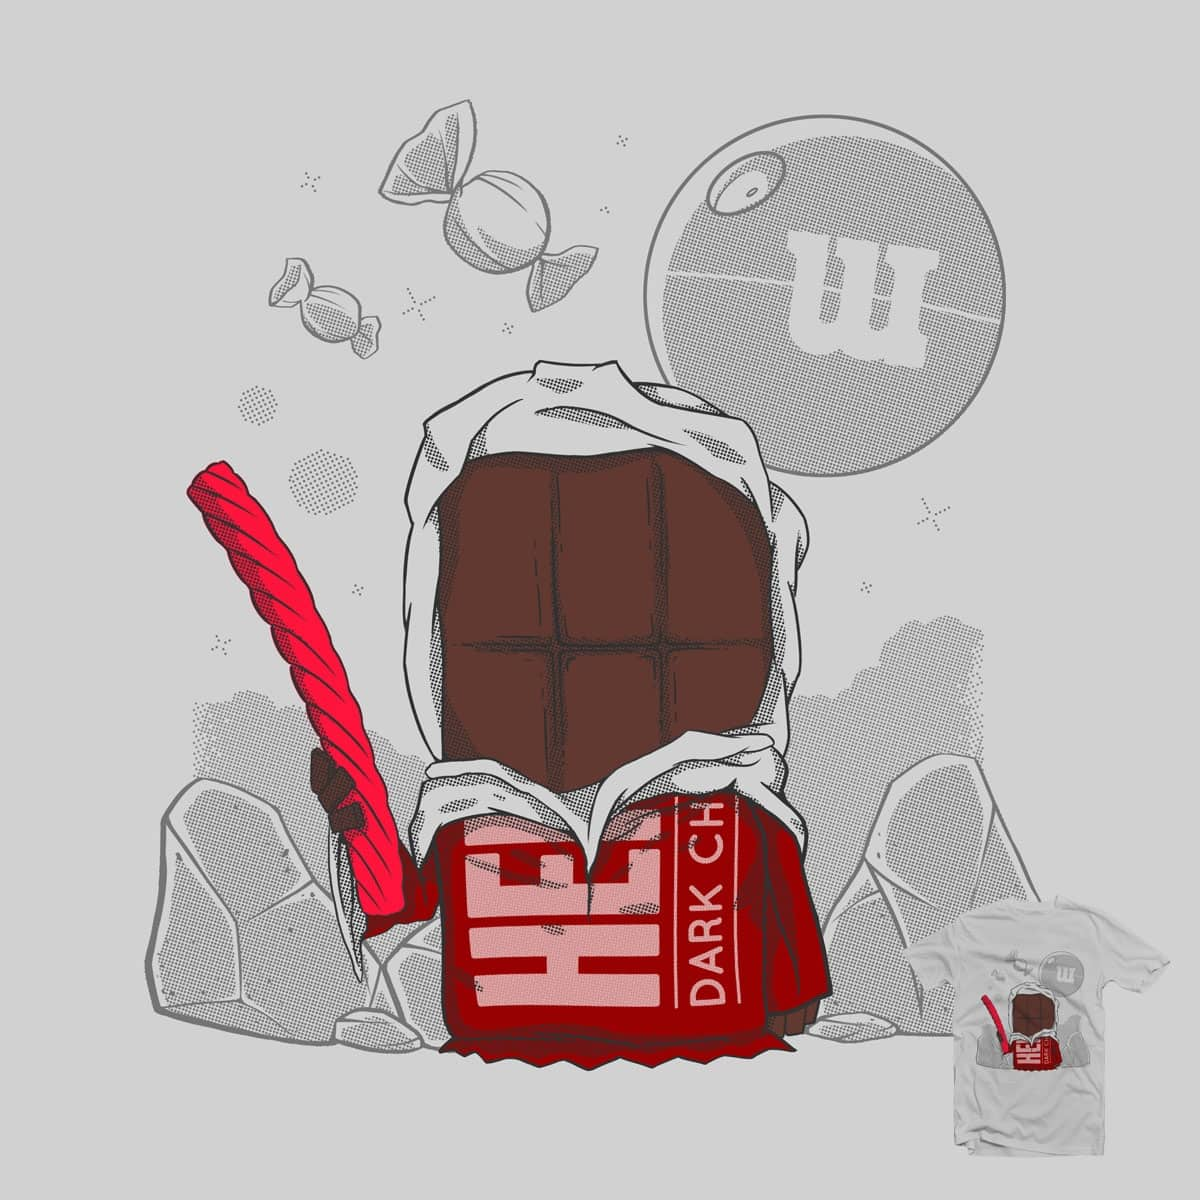 Darth Chocolate by goliath72 and nerrik on Threadless